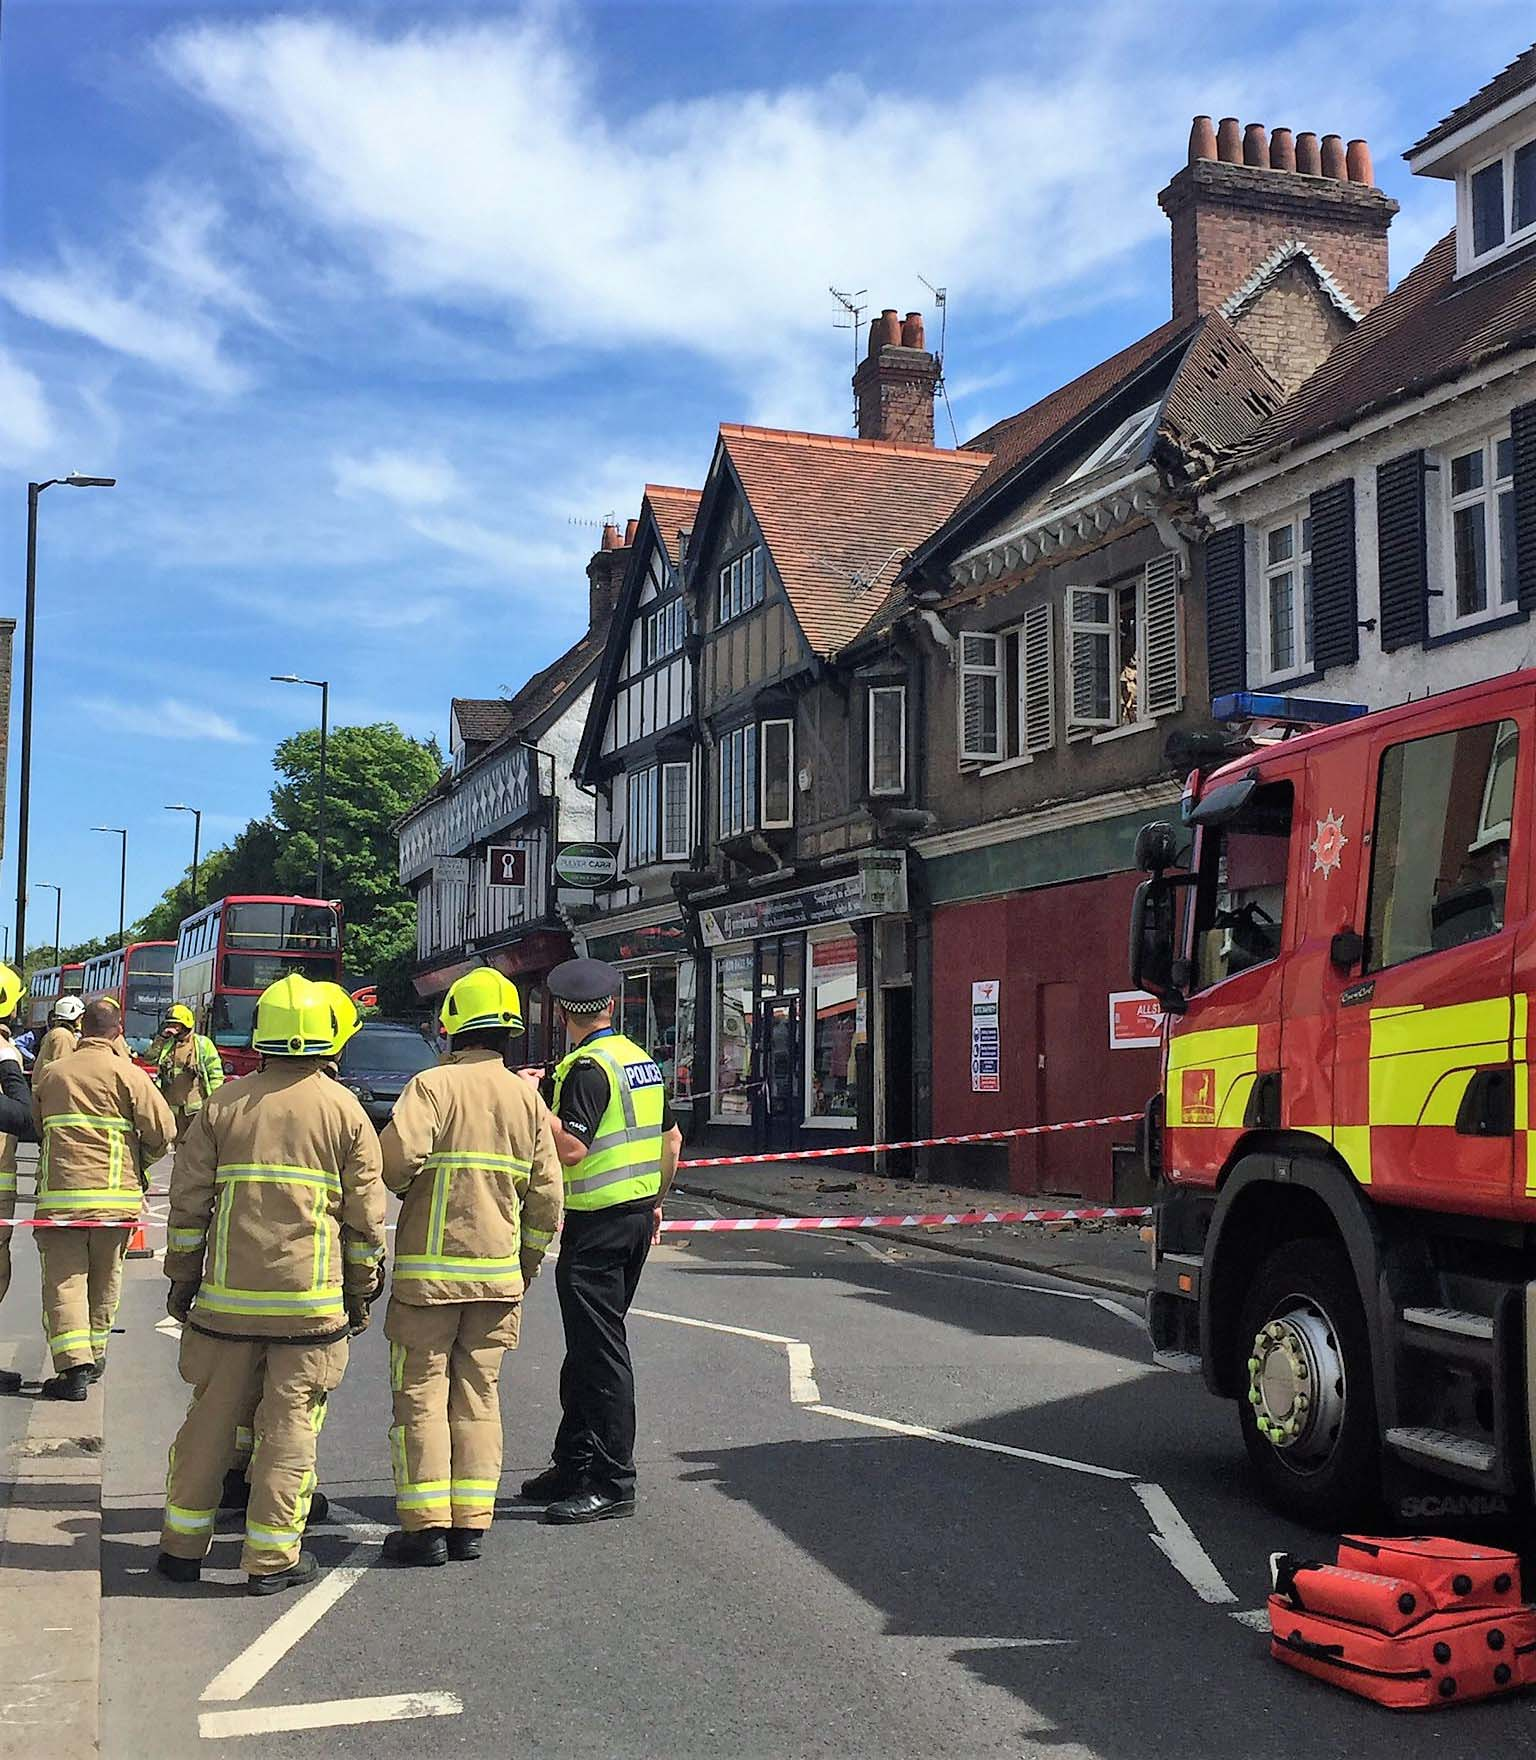 4 people rescued from a collapsed building under renovation in the High Street. Six others walk free